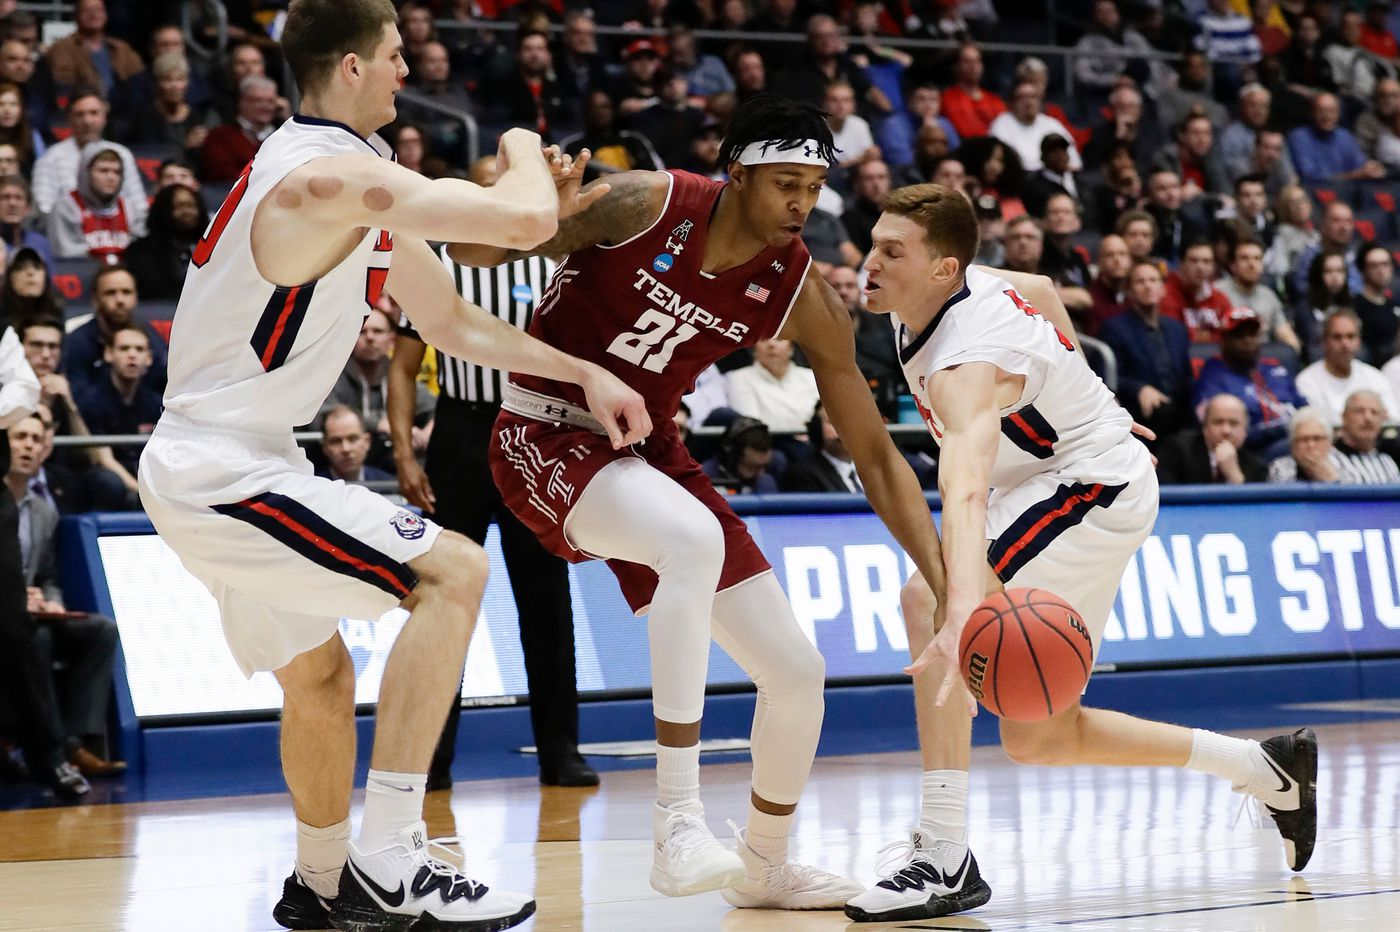 A more versatile Belmont team ended Temple's NCAA Tournament hopes